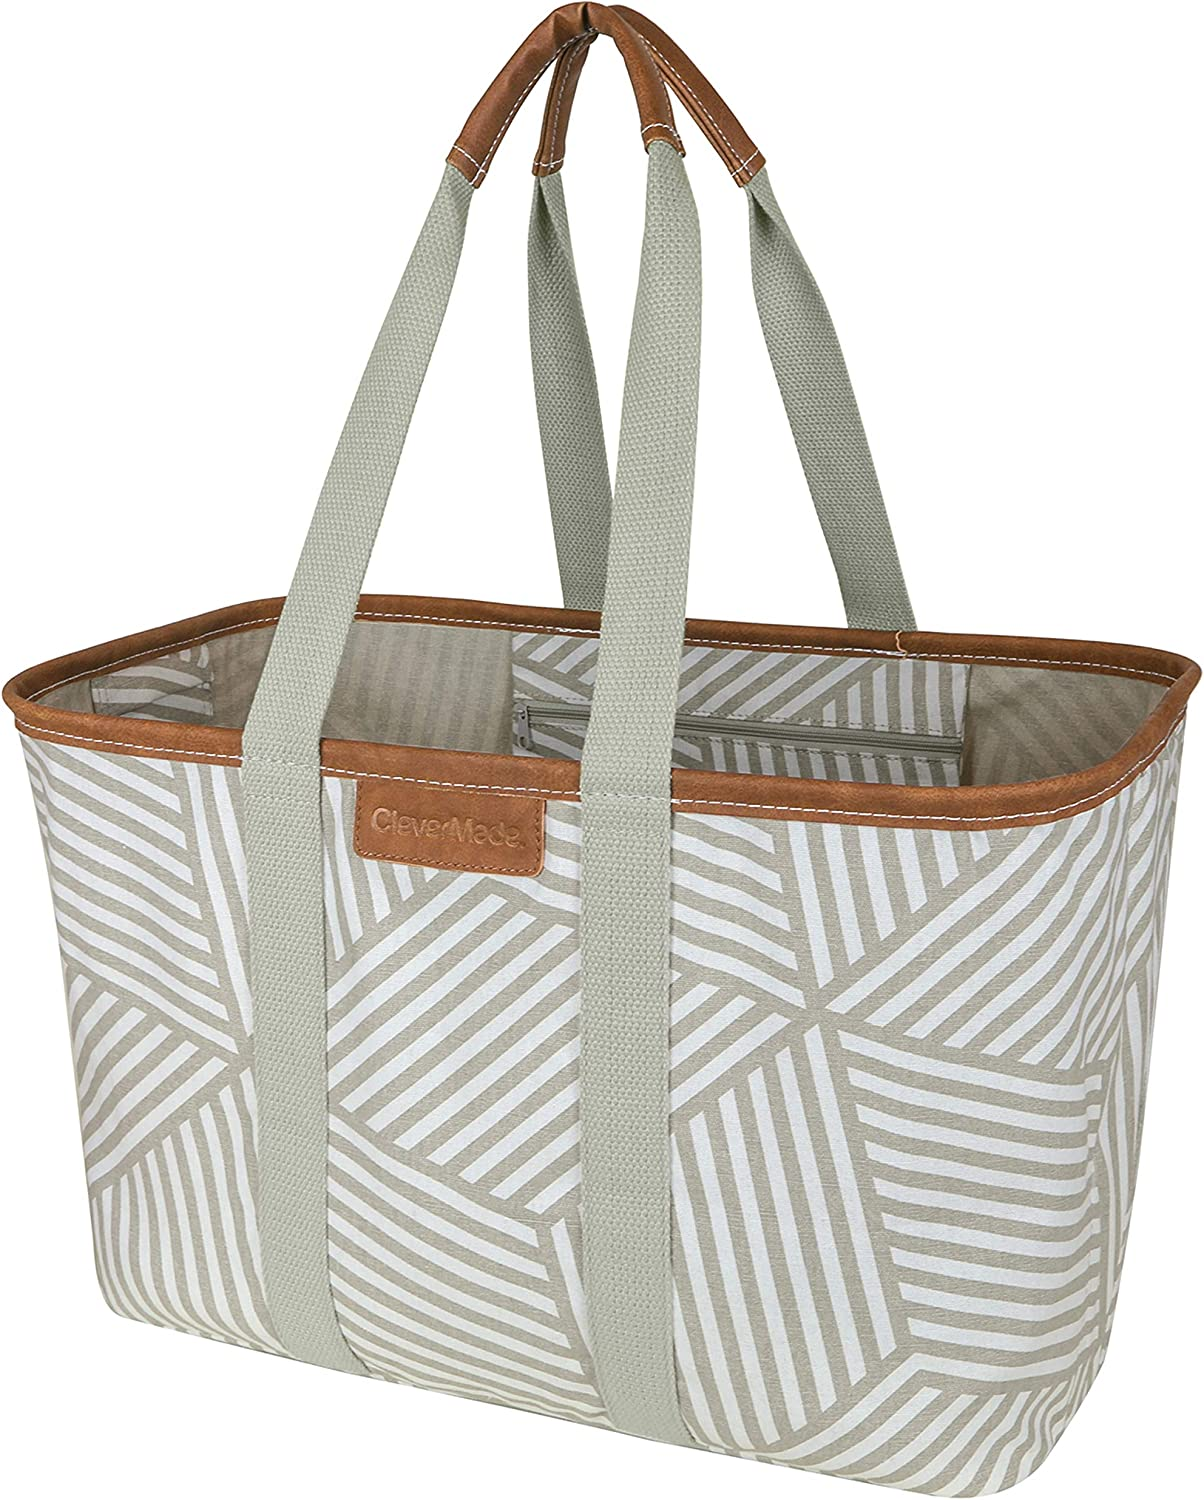 CleverMade 30L SnapBasket LUXE - Reusable Collapsible Durable Grocery Shopping Bag - Heavy Duty Large Structured Tote, Geometric Taupe